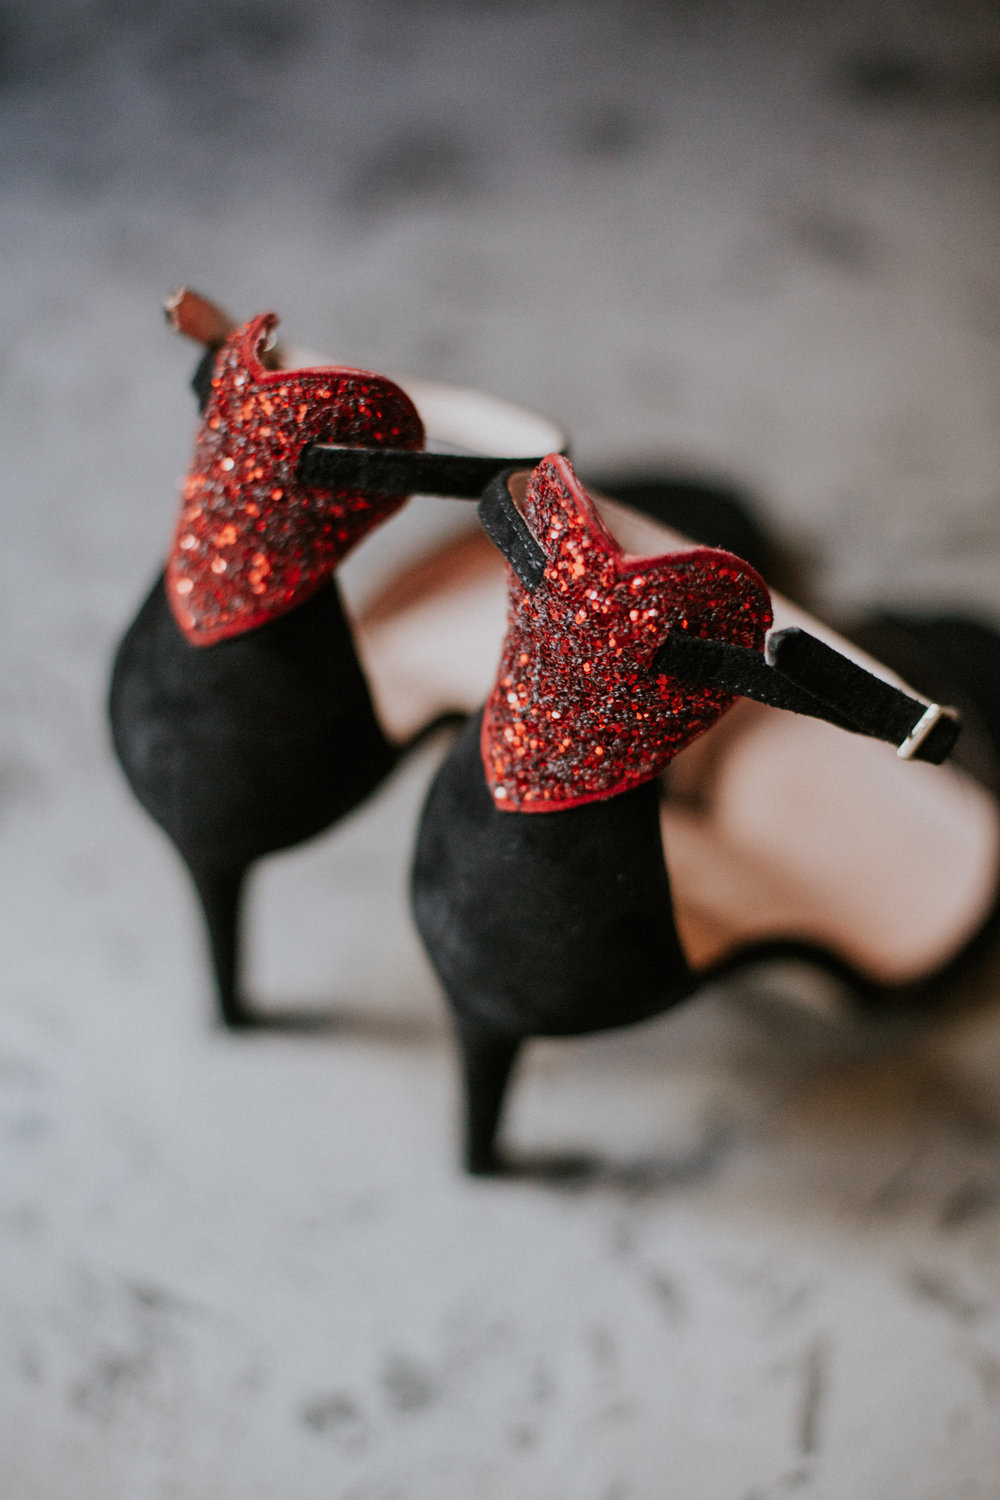 The black velvet with the sparkler red hearts wedding shoes presented to the bride from her beloved aunt